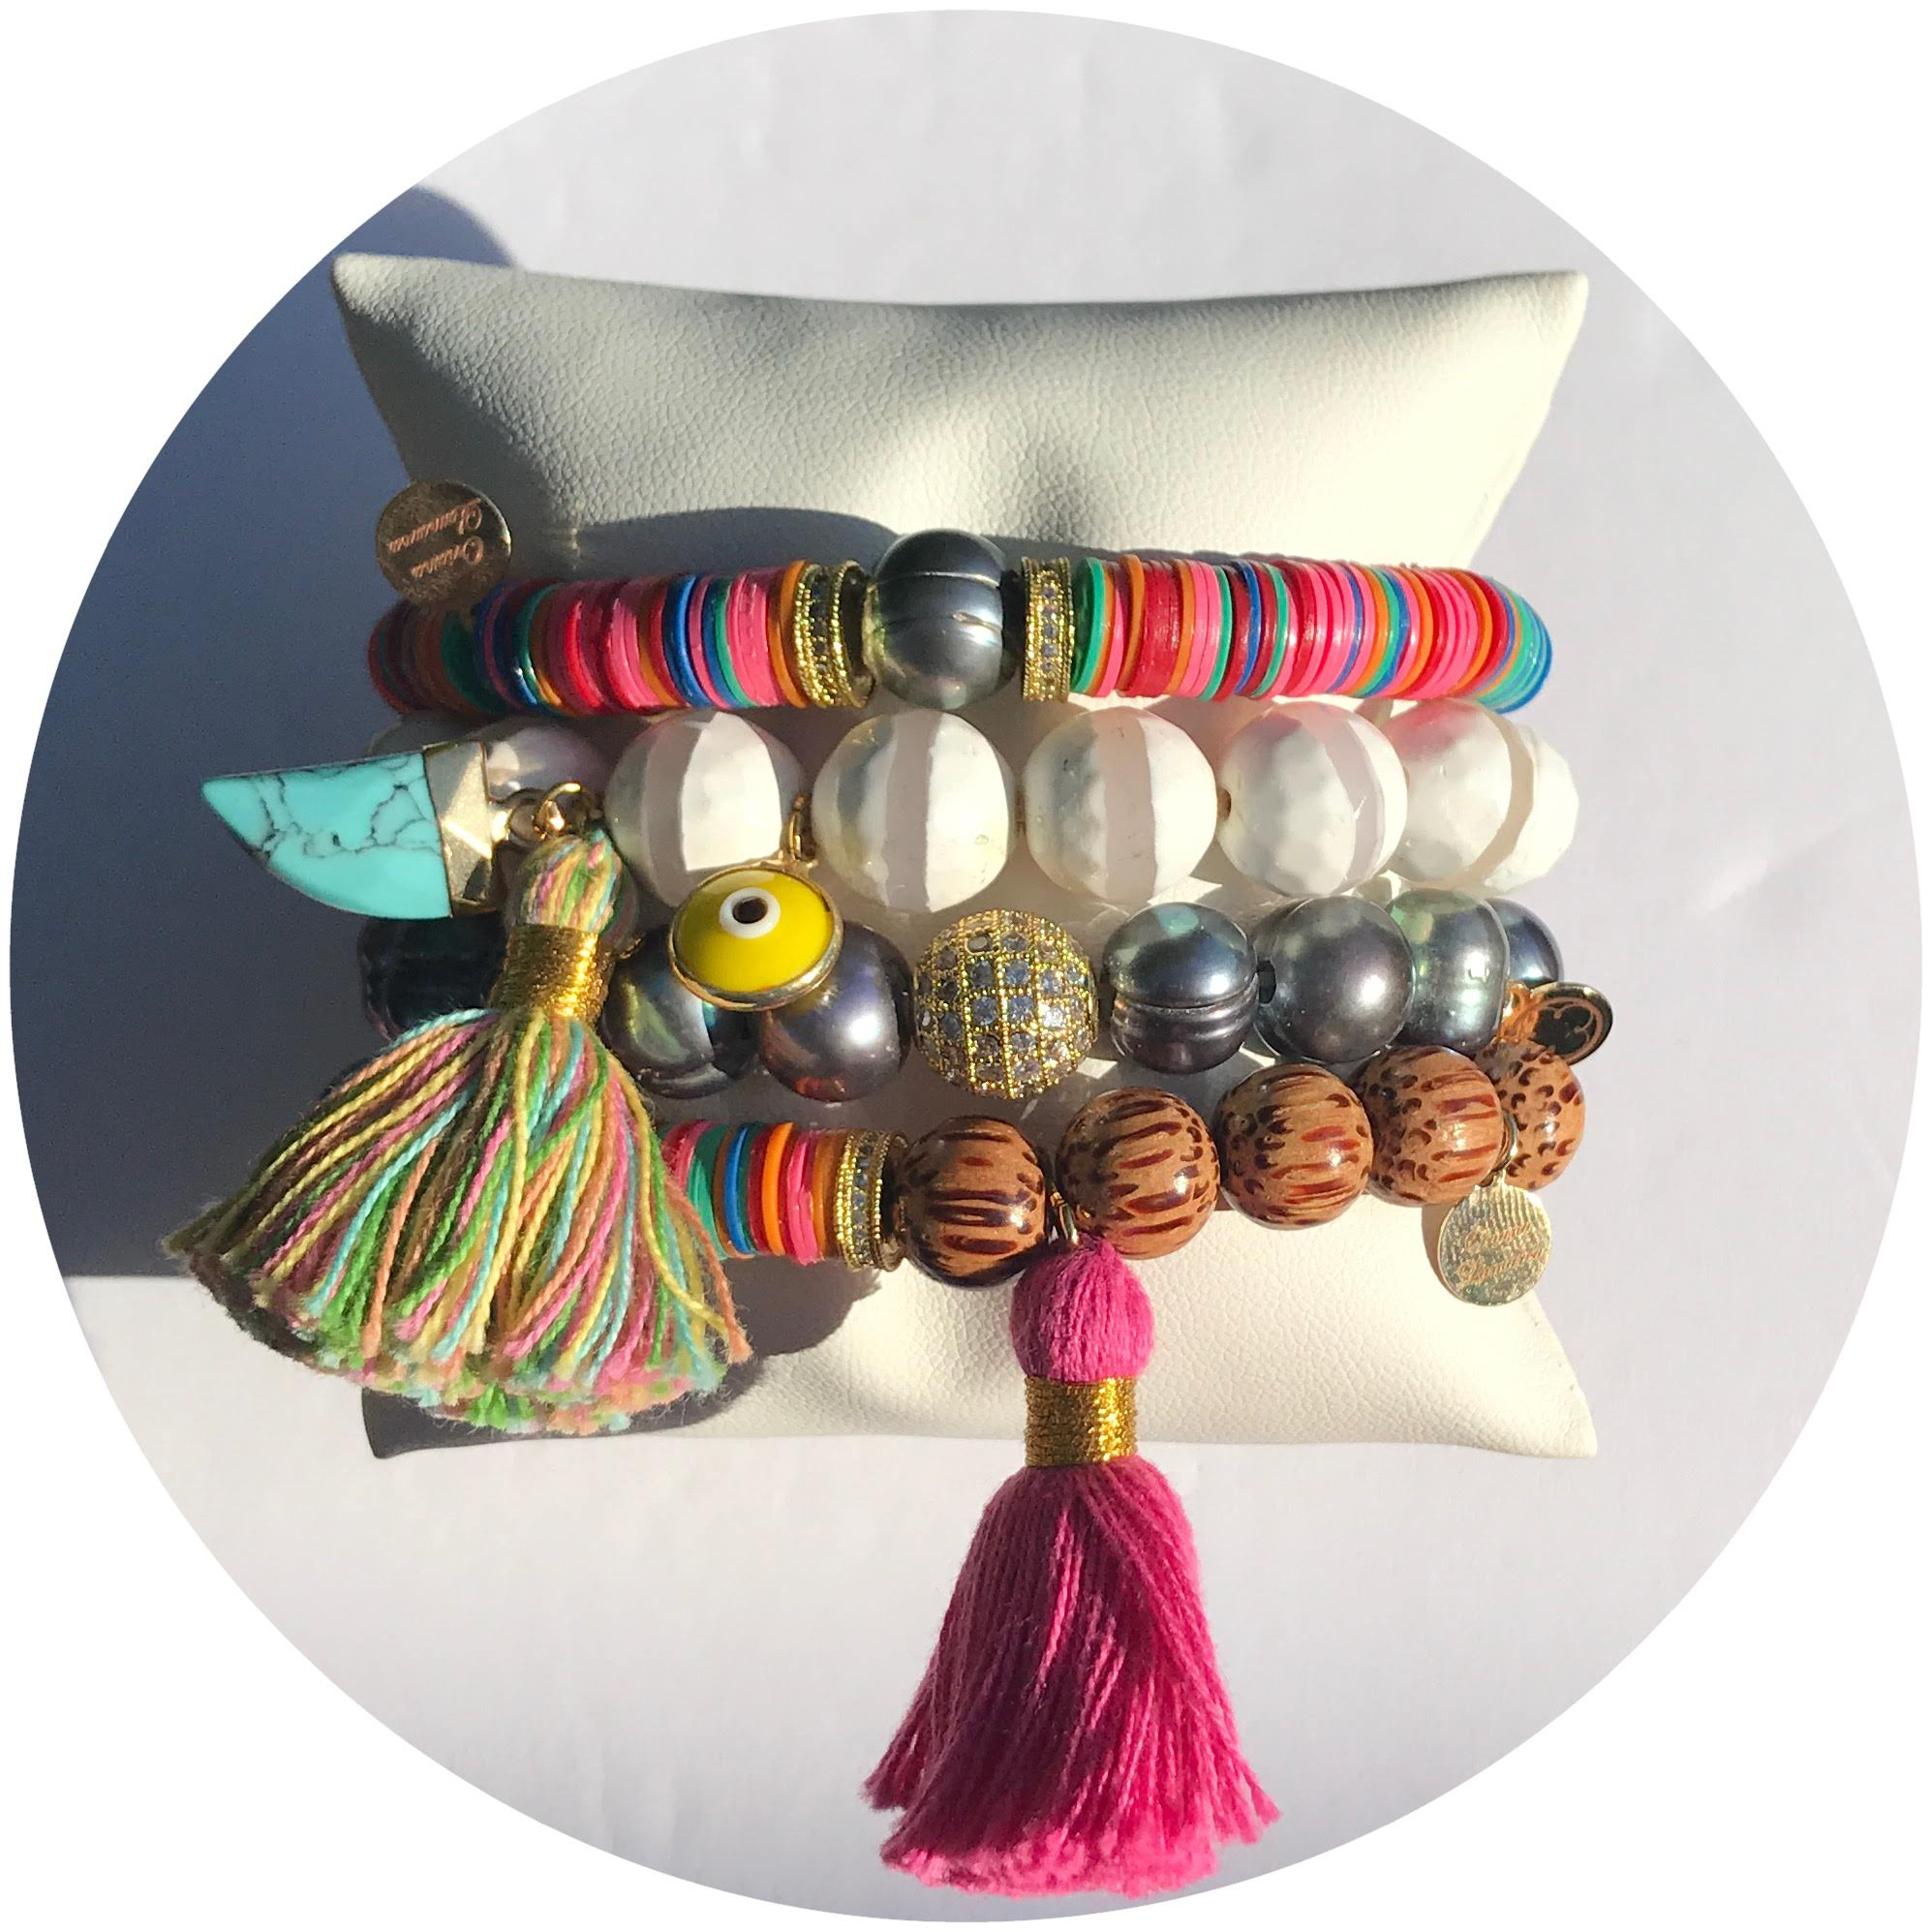 Trendy Thai Armparty - Oriana Lamarca LLC